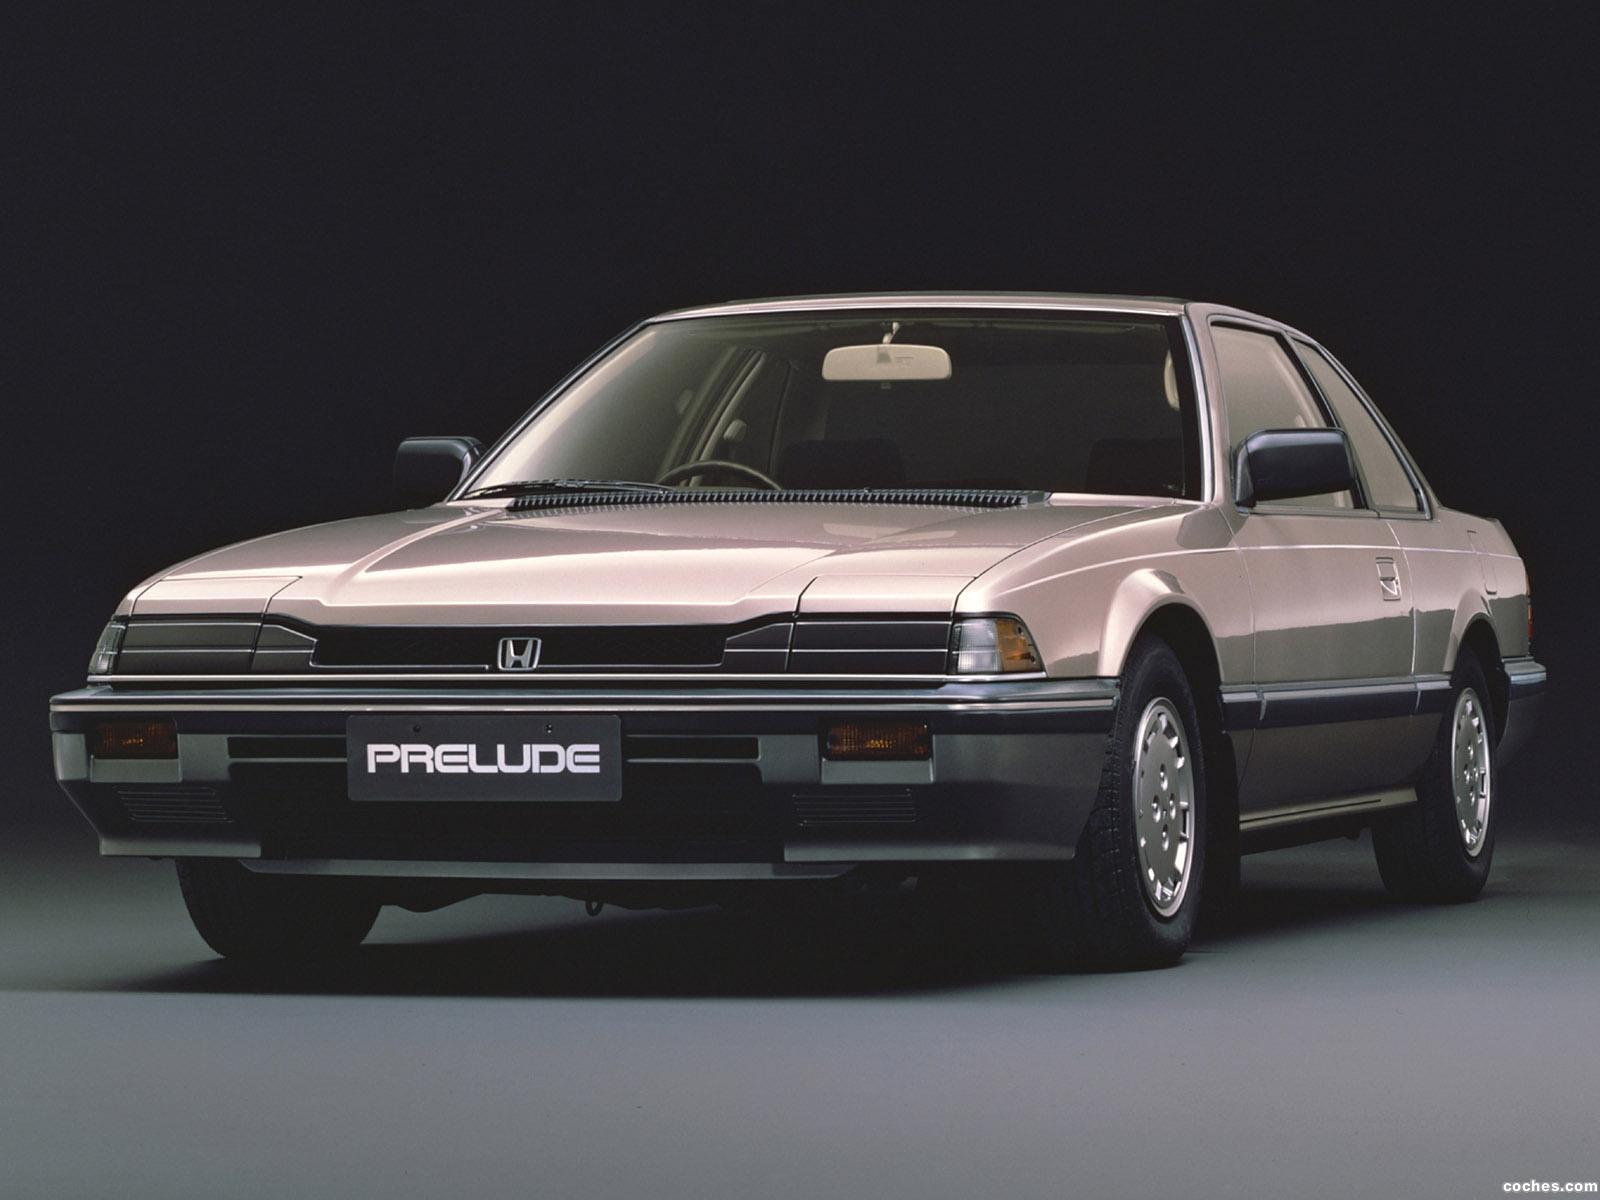 Honda Prelude Xx R furthermore Honda Civic Pic X together with Honda Pilot Back Glass additionally Honda Prelude V besides Honda Prelude. on 1982 honda prelude